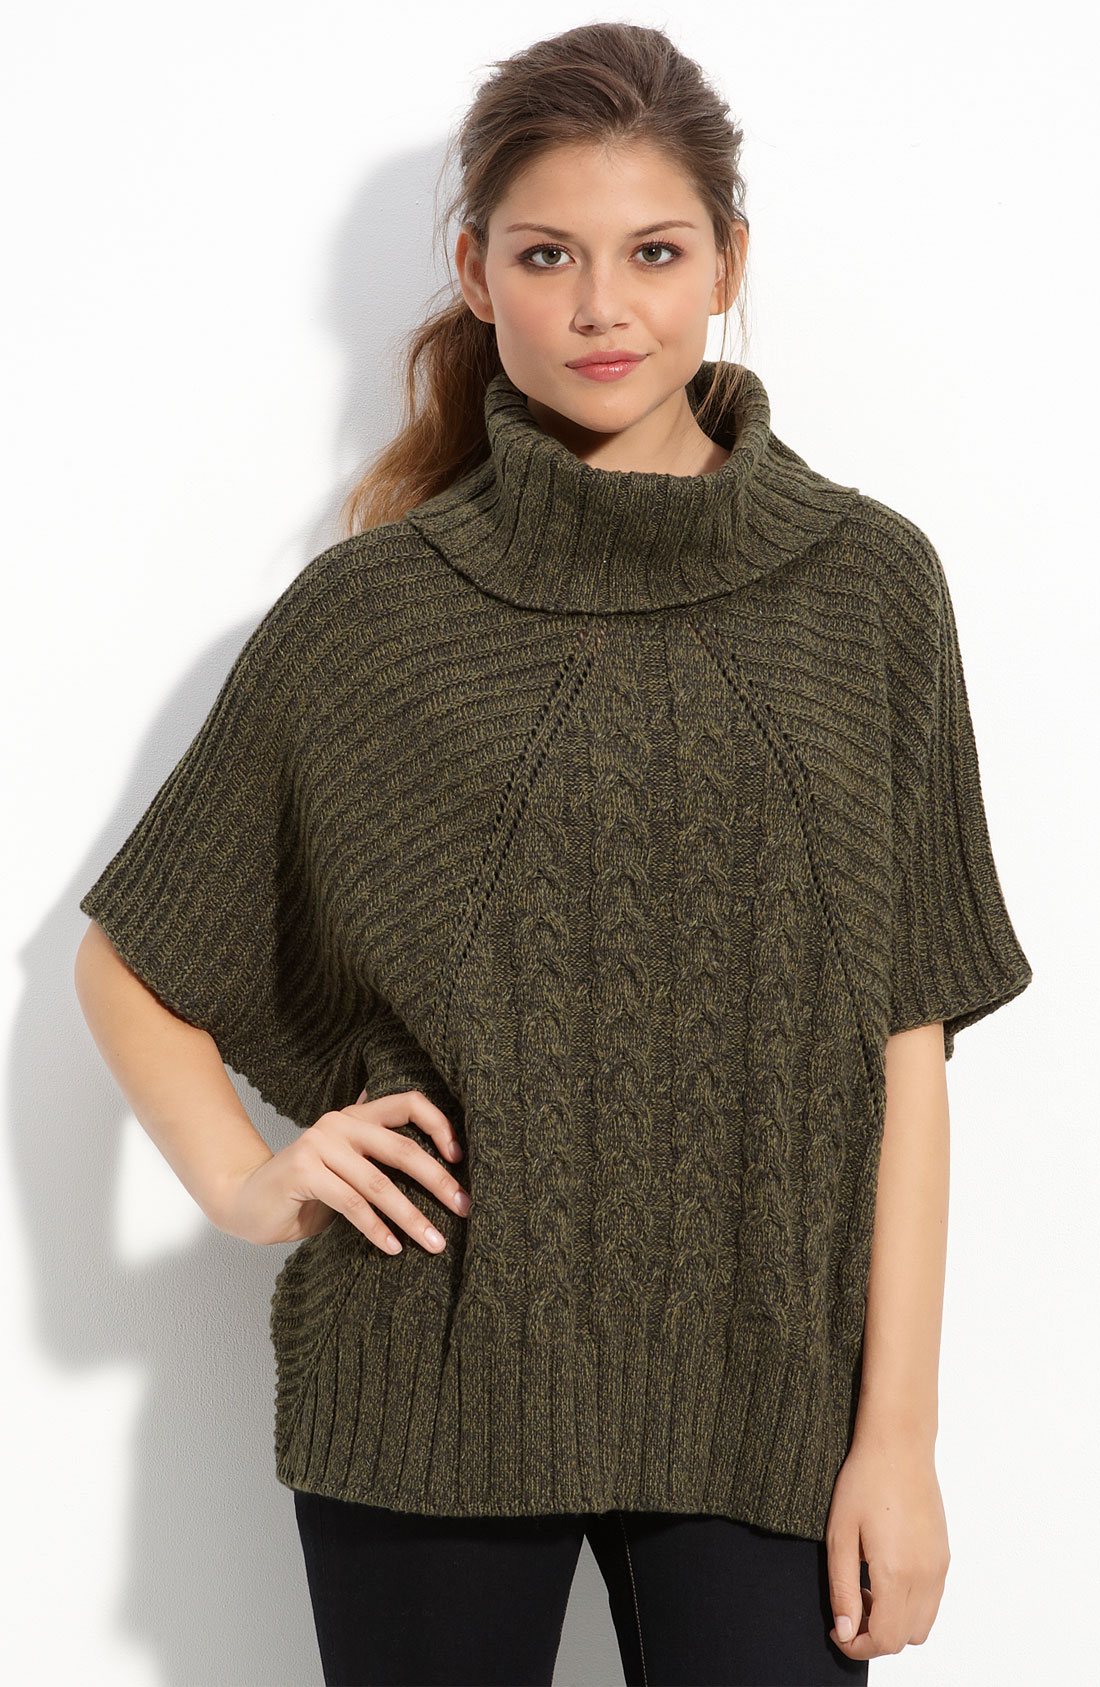 Turtleneck Poncho Sweater | Dress images